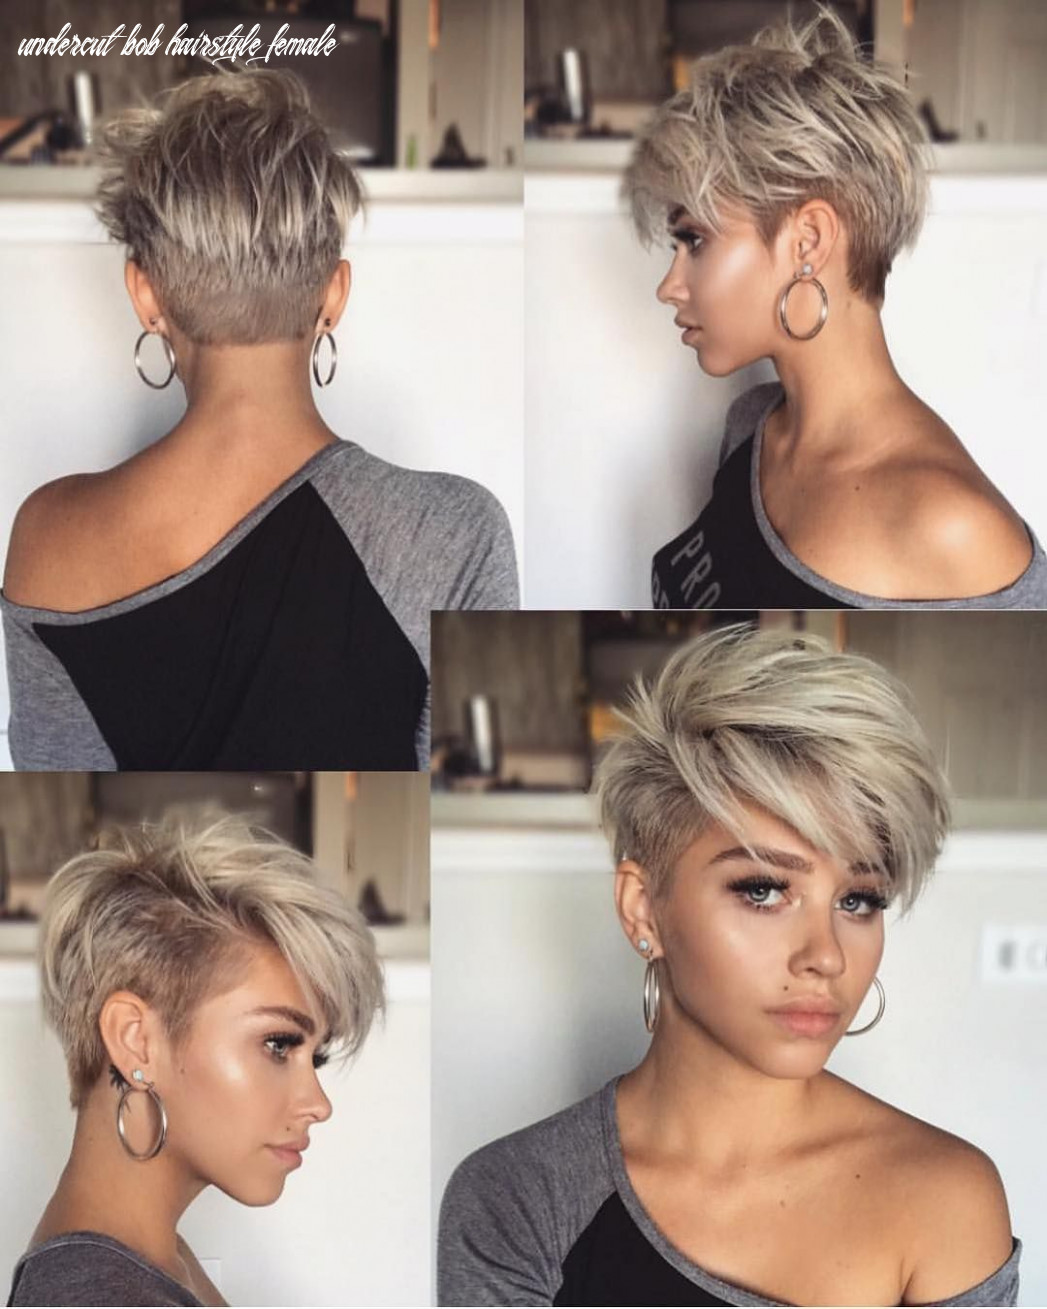 Image result for undercut bob haircuts | frisuren, schöne kurze